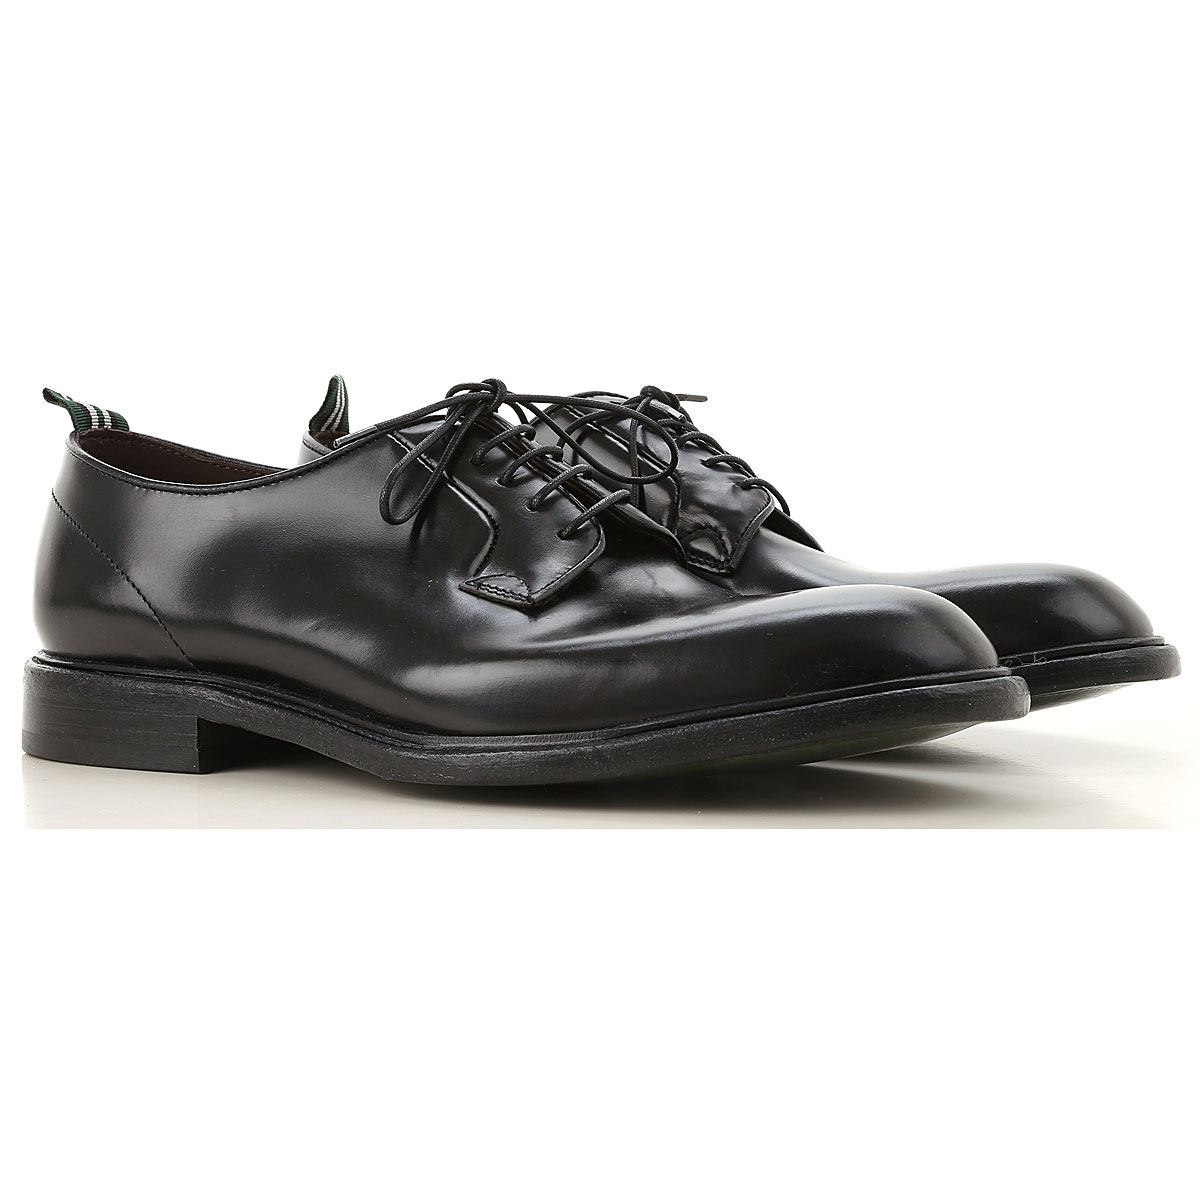 Green George Lace Up Shoes for Men Oxfords Derbies and Brogues On Sale USA - GOOFASH